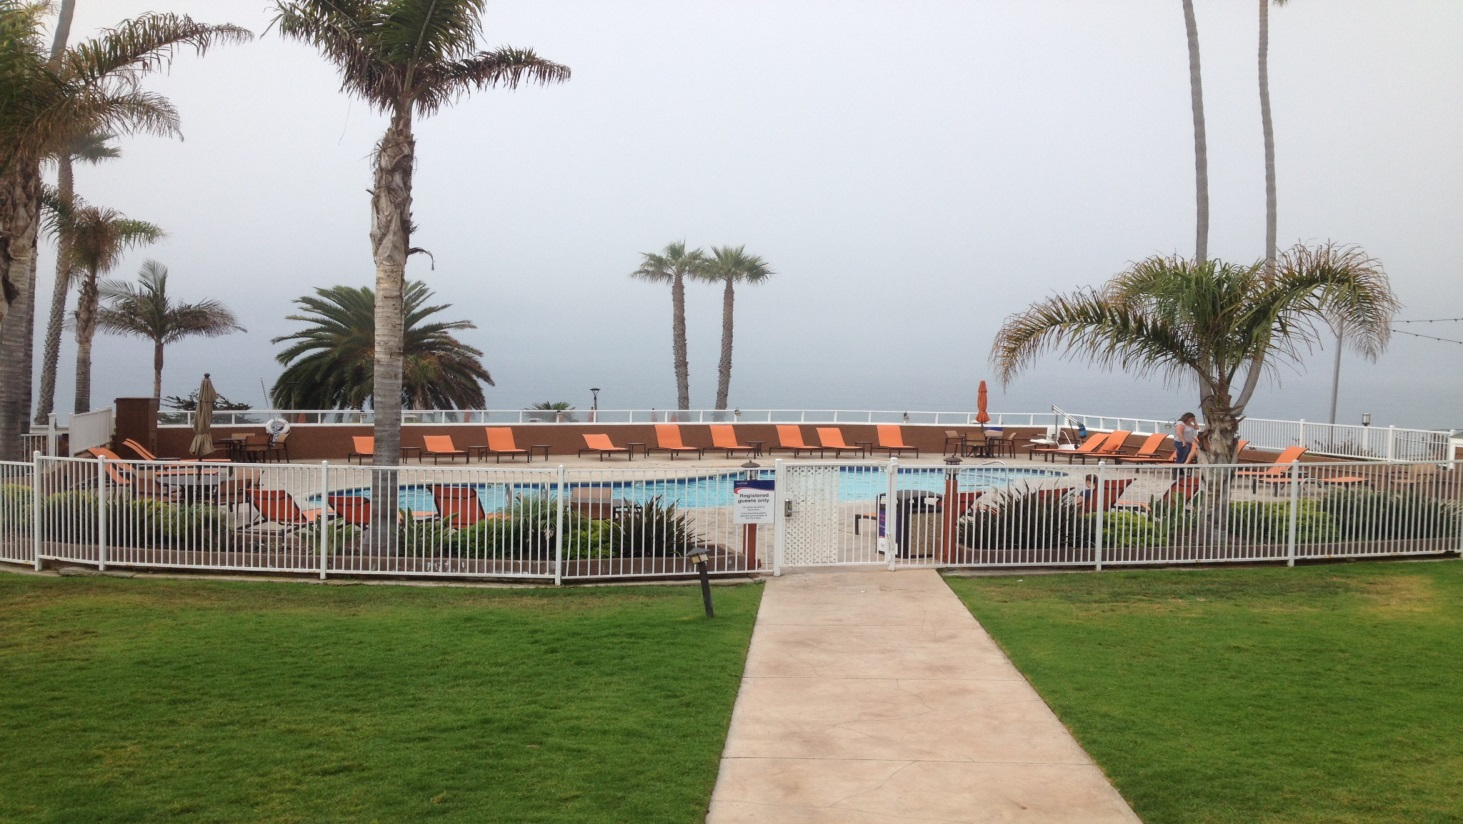 Pismo Beach:  Relax at SeaCrest Oceanfront Hotel & Play at Steve's ATV